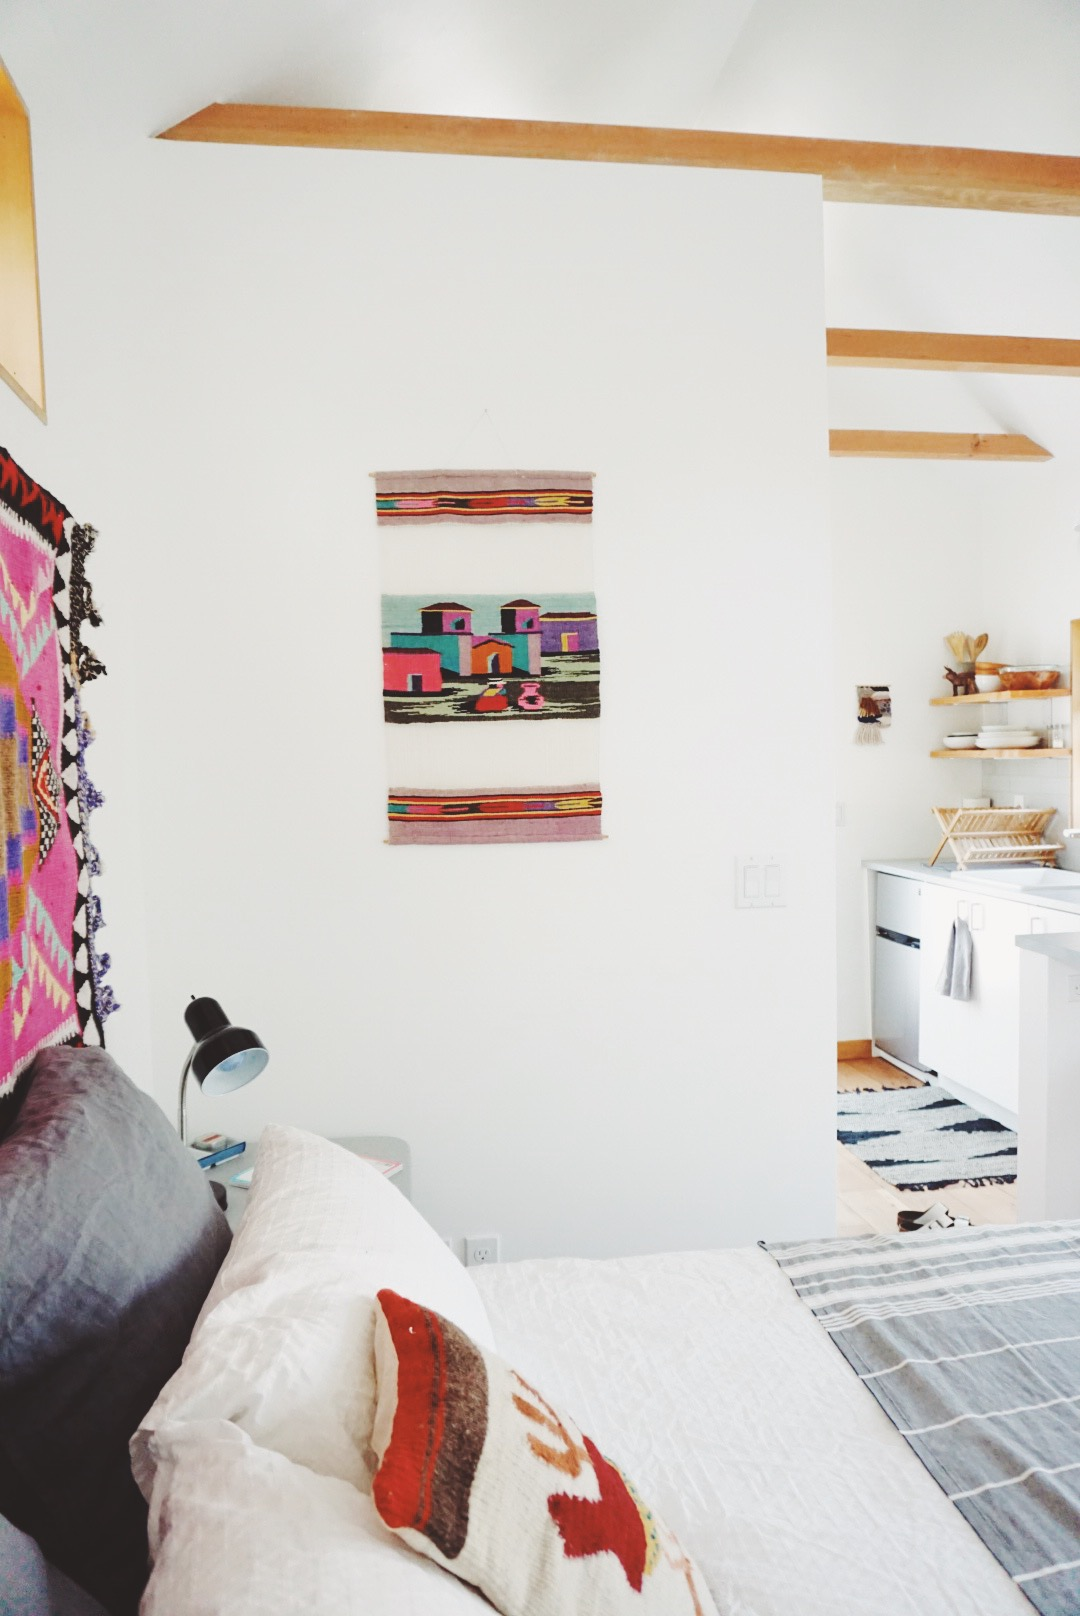 a cozy room in a tiny house designed by Emily Katz